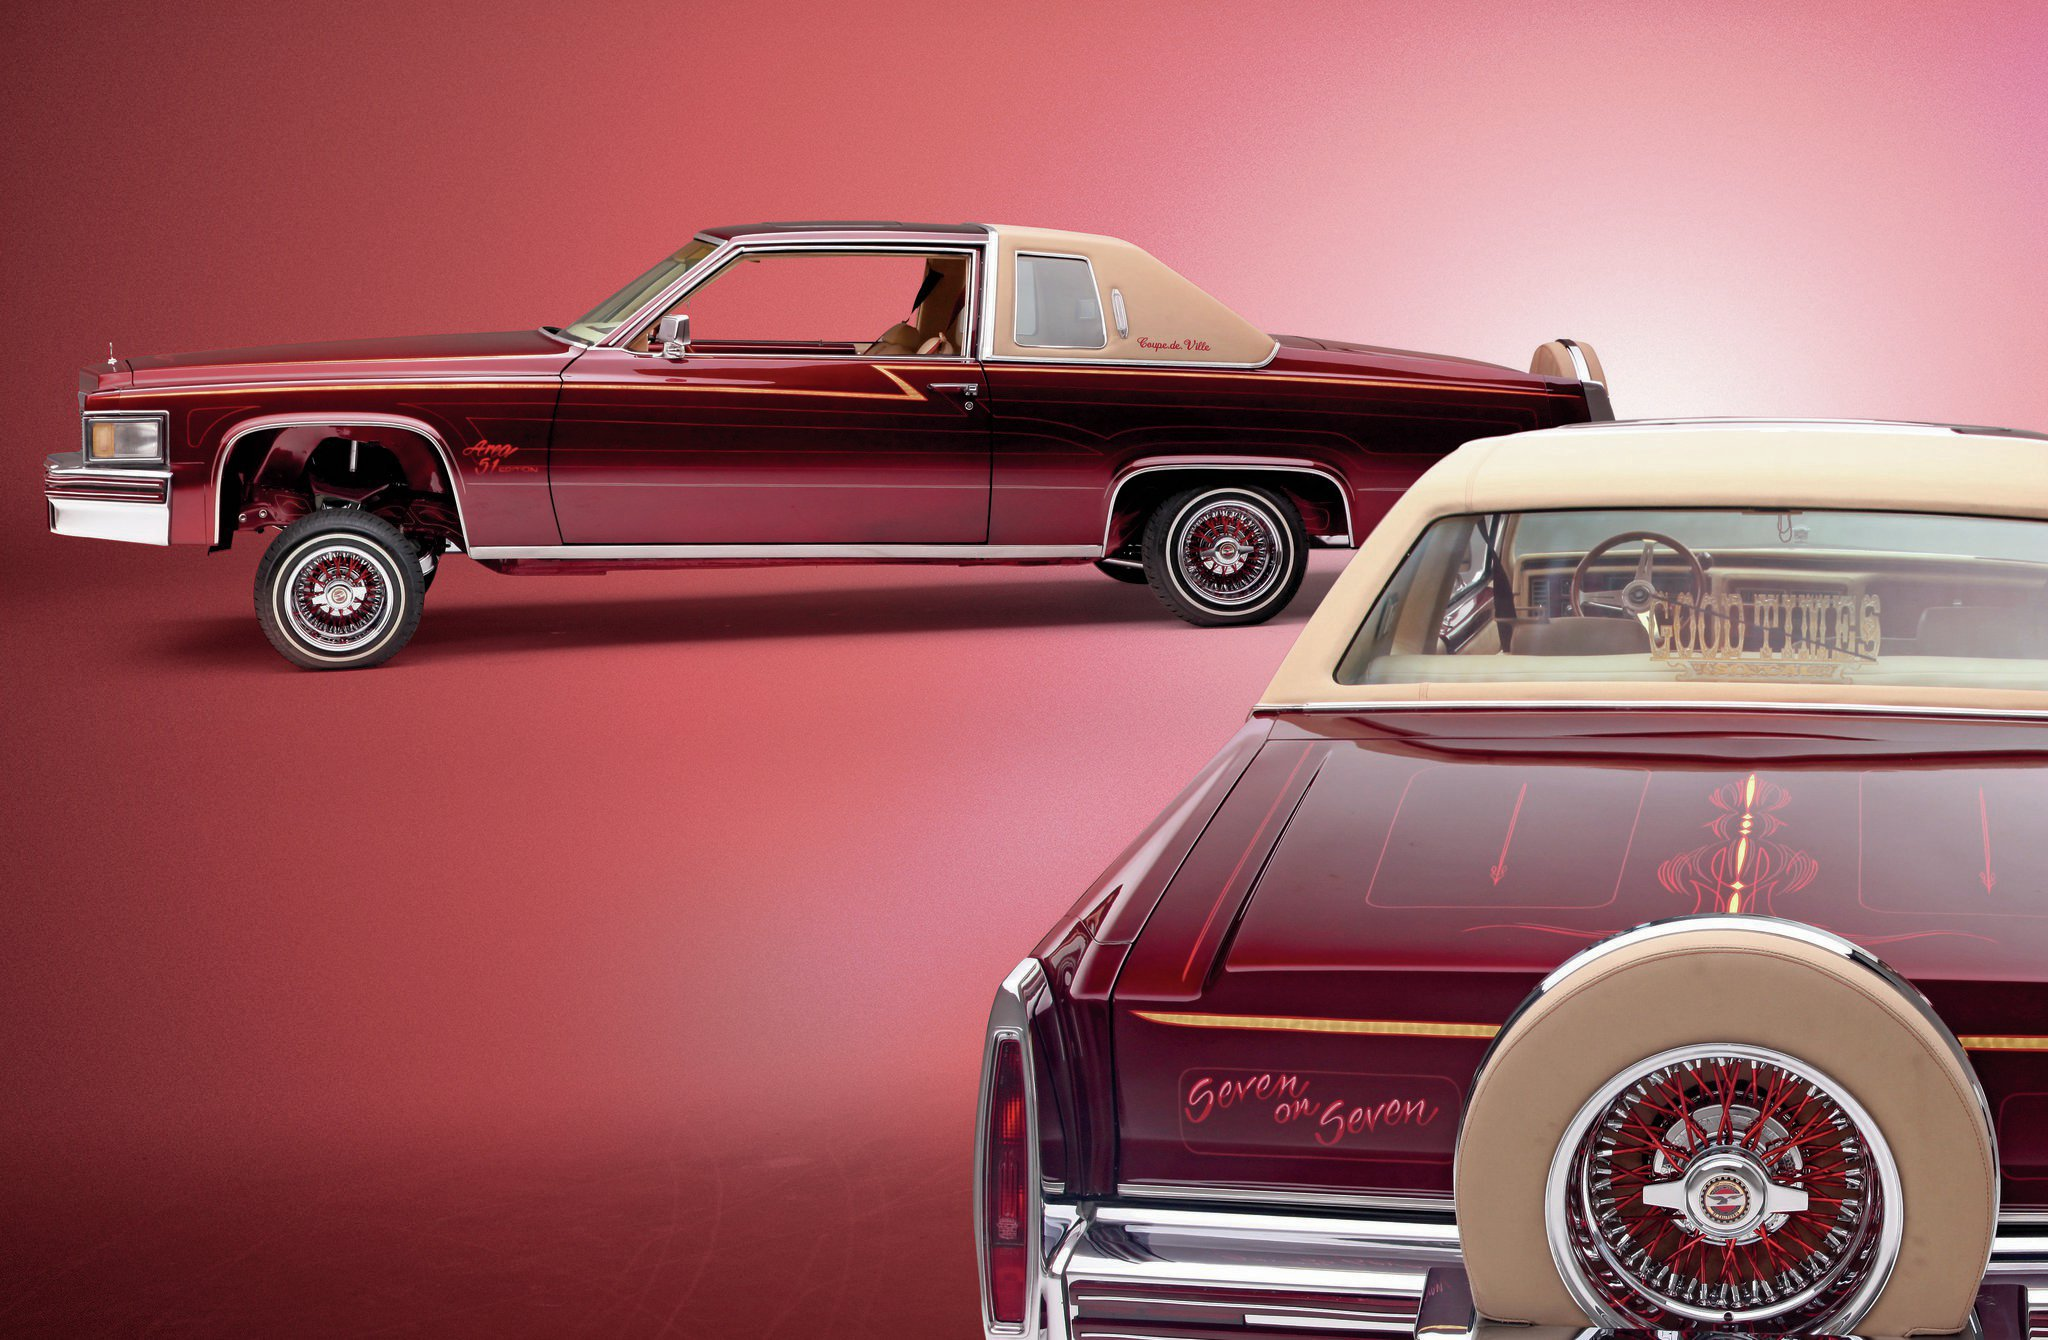 1977 Cadillac Coupe Deville Brandy And Seven